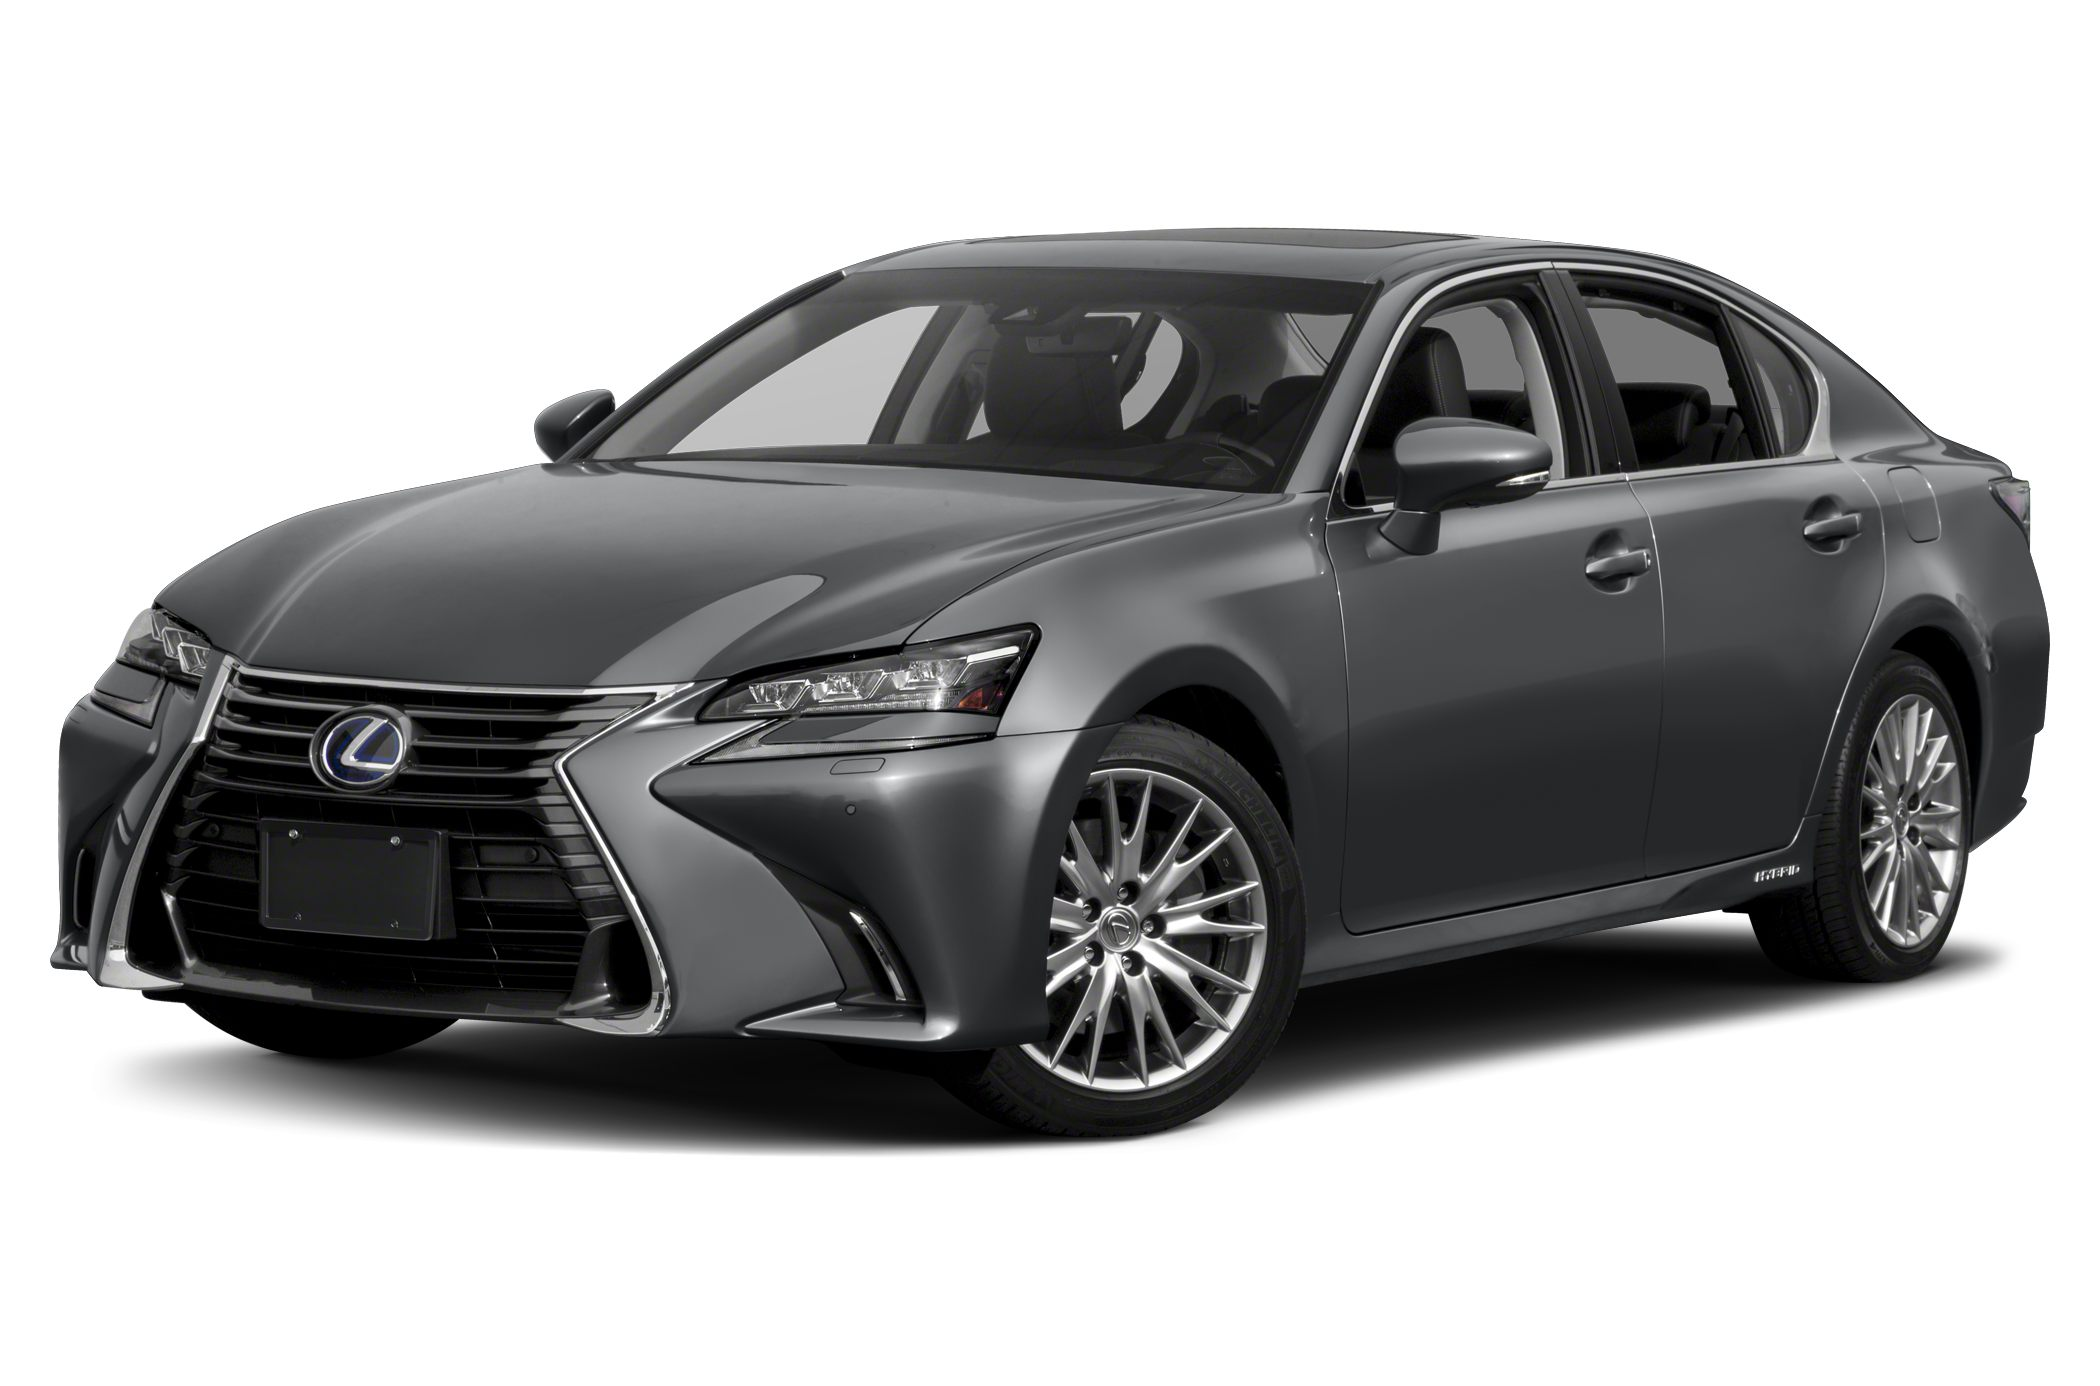 2013 lexus gs 450h w video autoblog. Black Bedroom Furniture Sets. Home Design Ideas